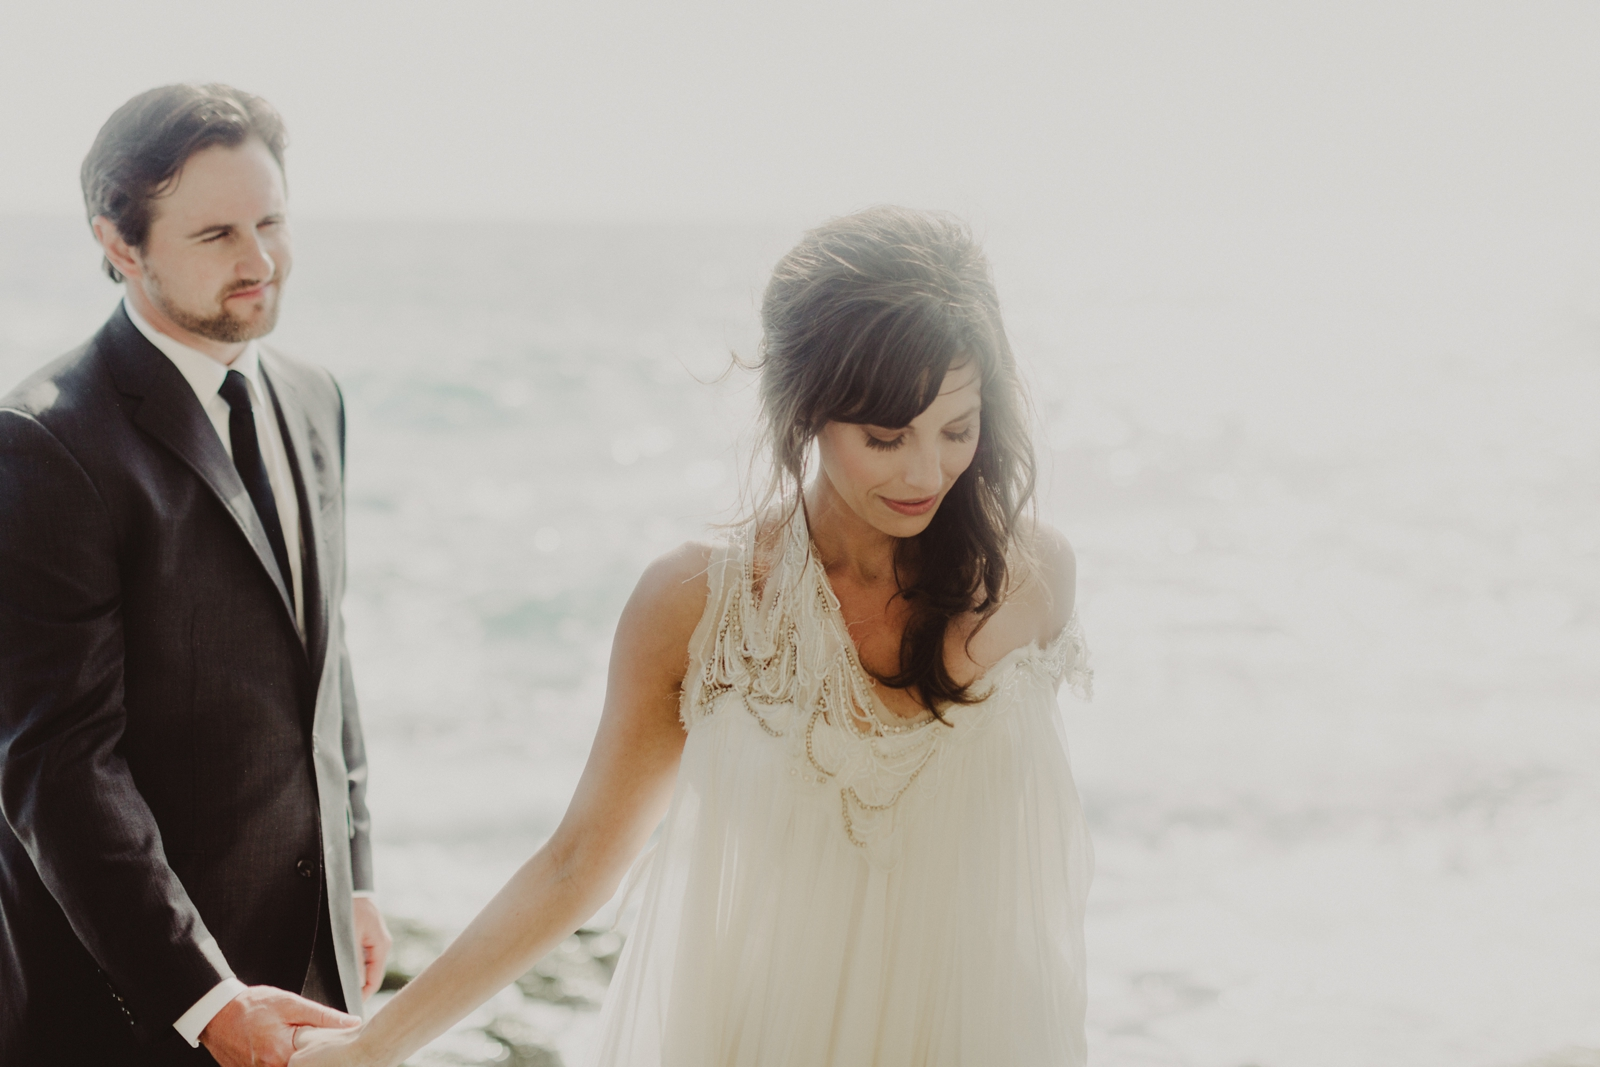 Kevin+Angie-Married-Blog-00006.jpg